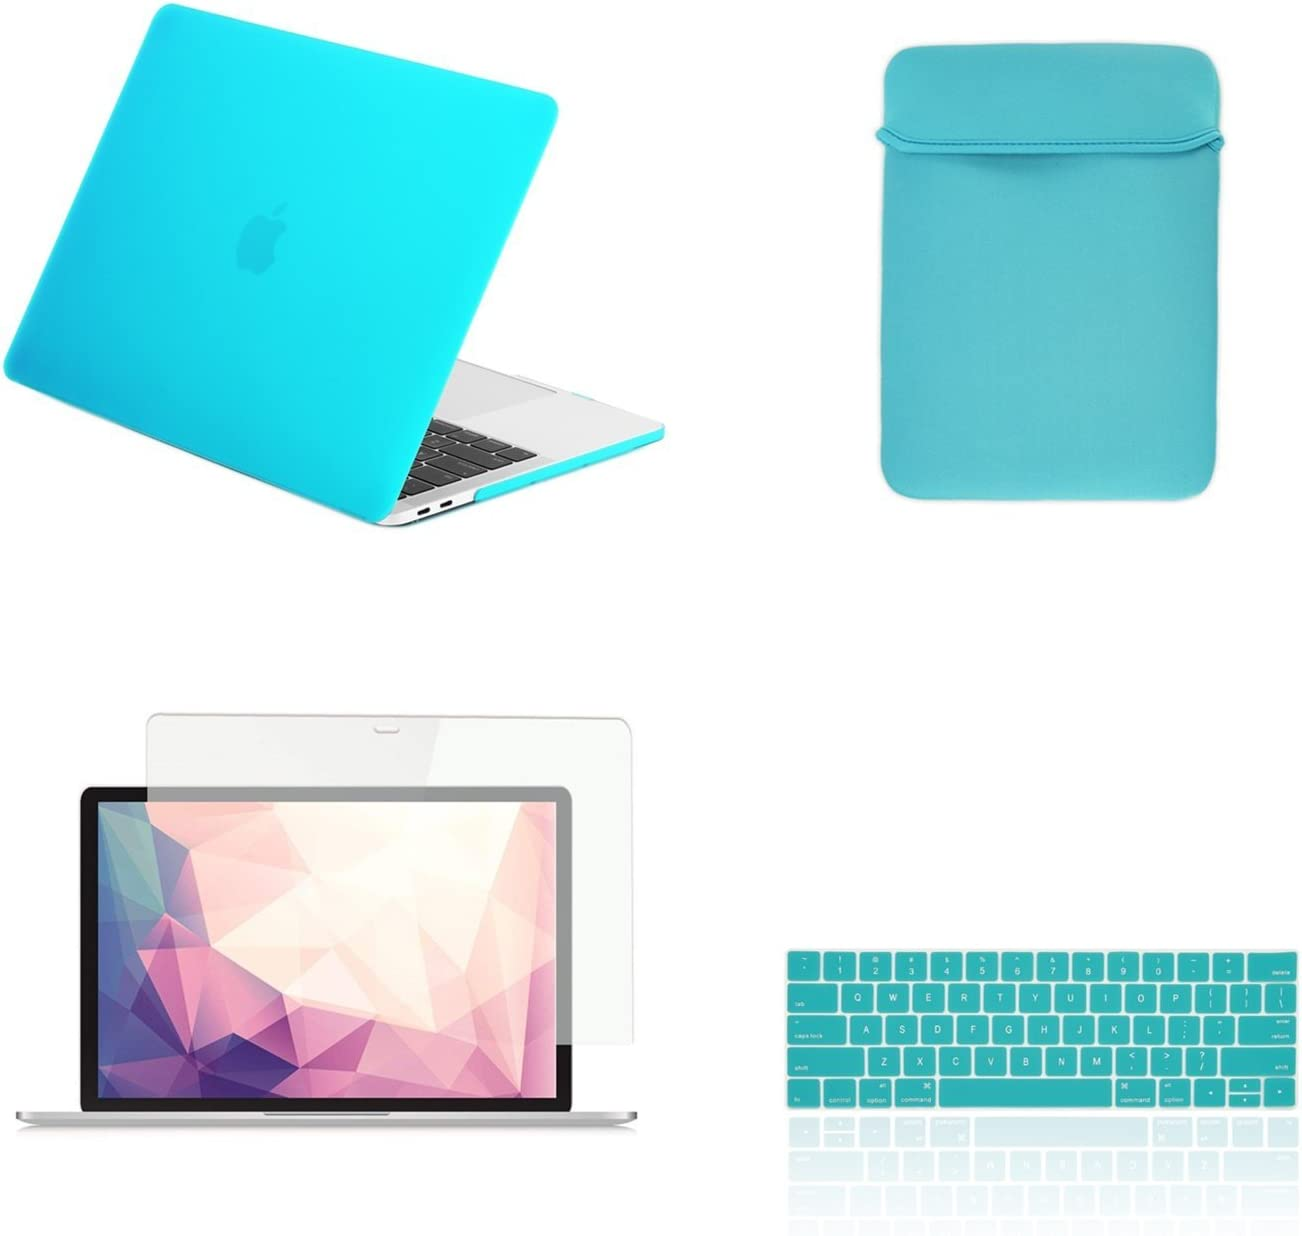 """TOP CASE MacBook Pro 13 inch Case 2019 2018 2017 2016 Release A2159 A1989 A1706 A1708, 4 in 1 Essential Rubberized Hard Case, Keyboard Cover, Screen Protector, Sleeve for MacBook Pro 13""""-Sapphire Blue"""